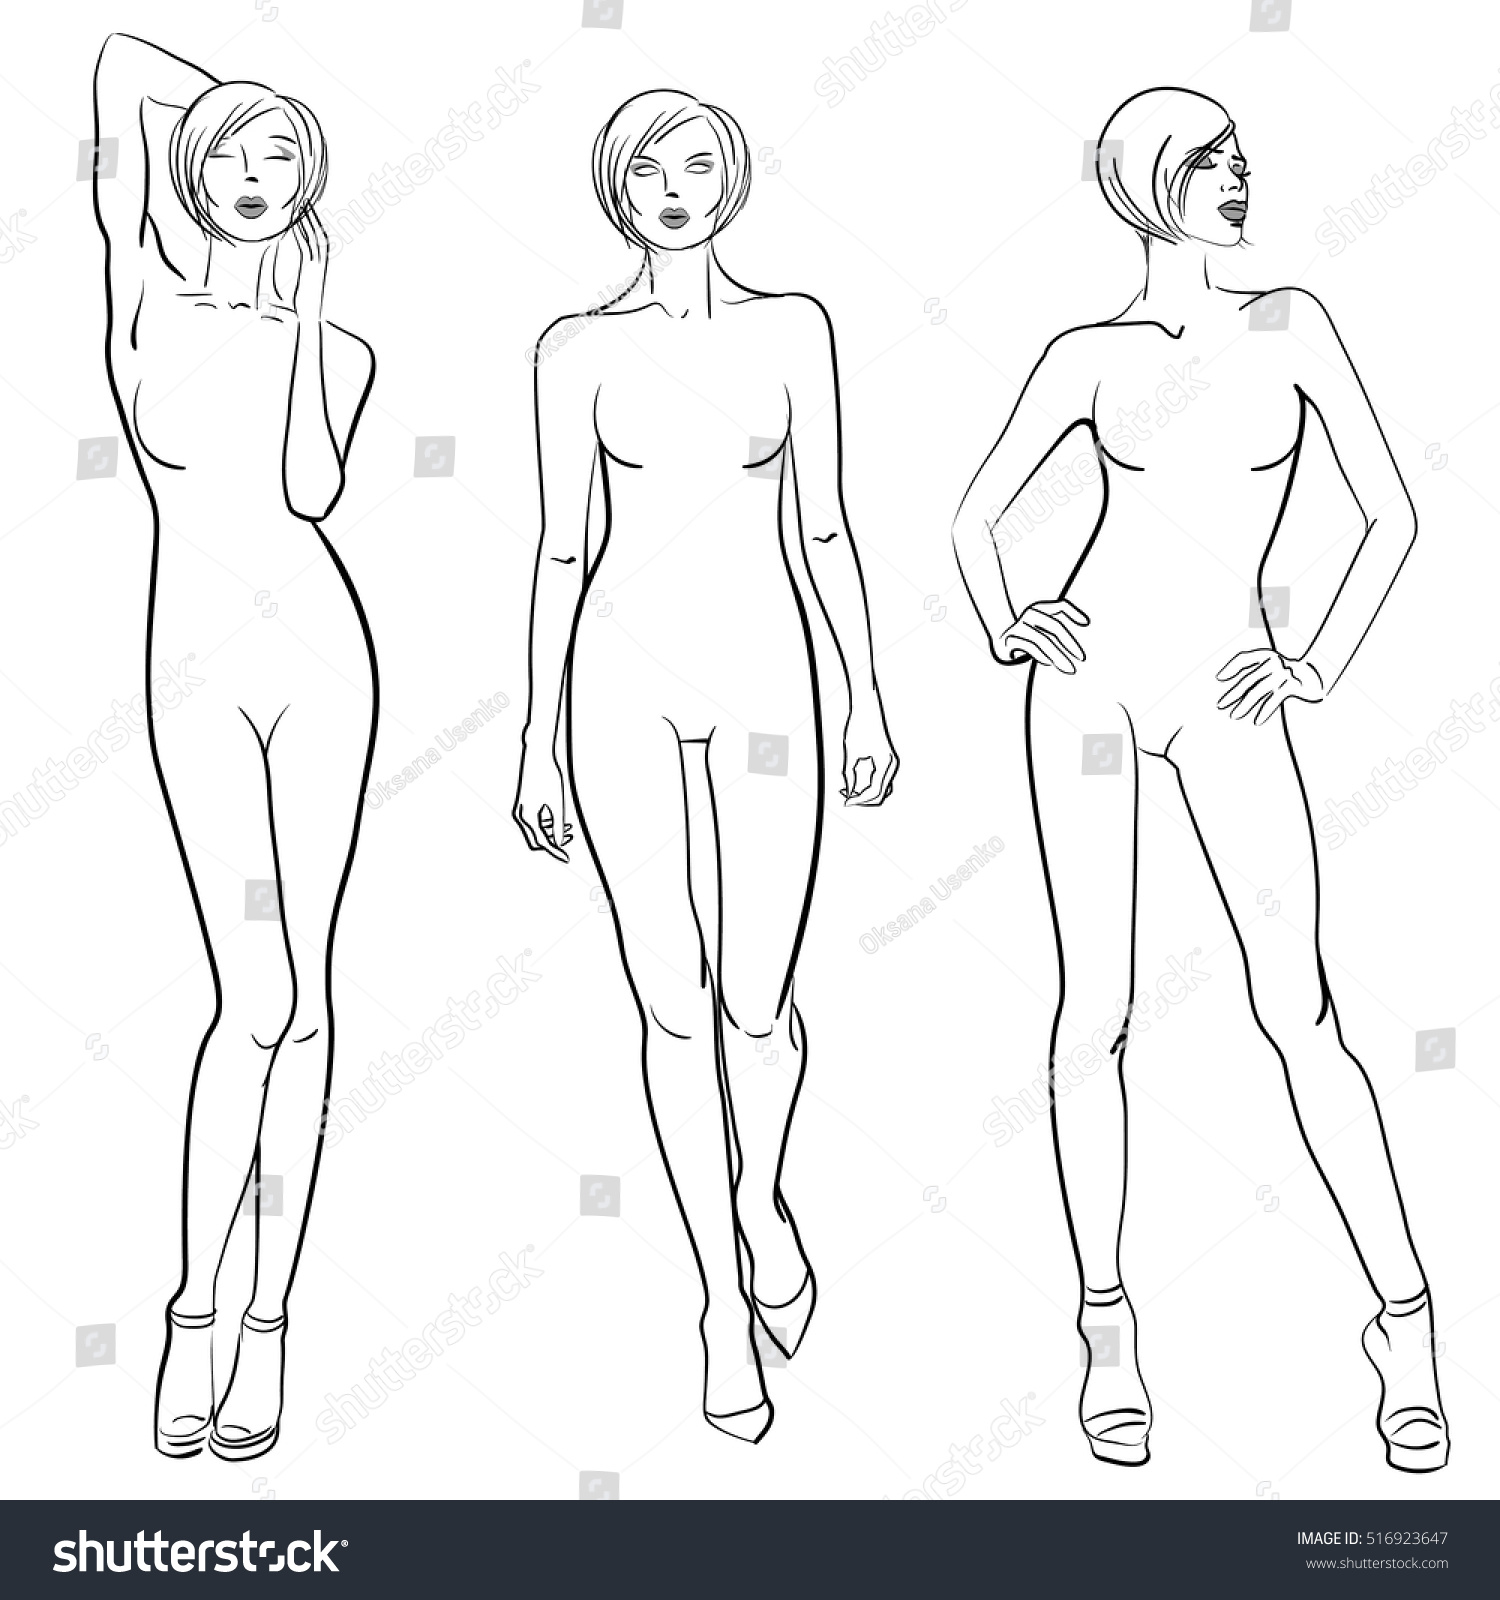 Royalty free sketch of fashion models templates for 516923647 sketch of fashion models templates for design 516923647 maxwellsz